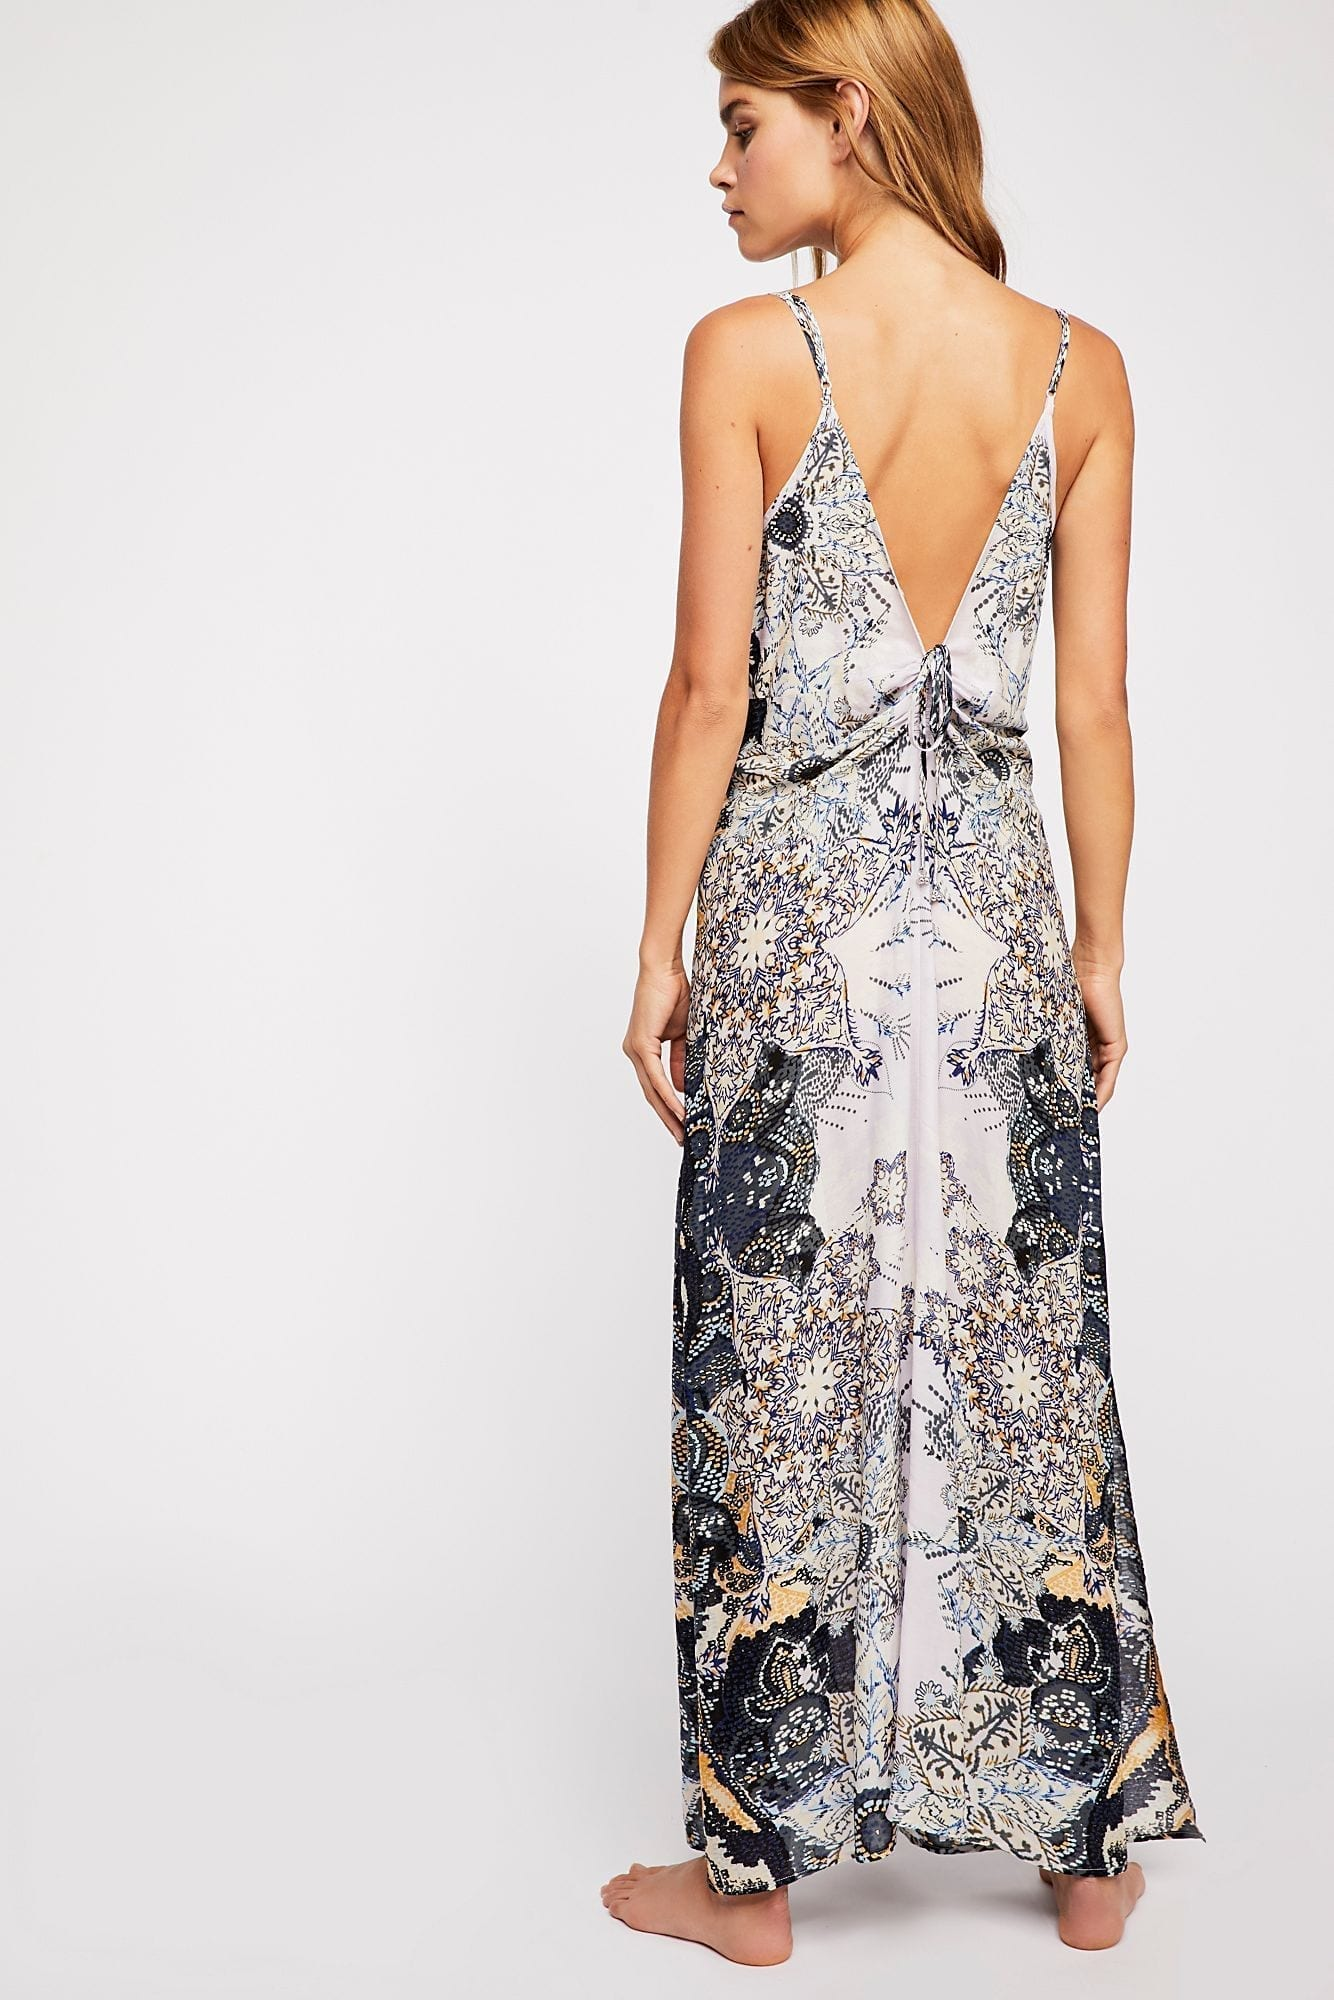 INTIMATELY Wildflower Printed Slip Lilac Dress - We Select Dresses